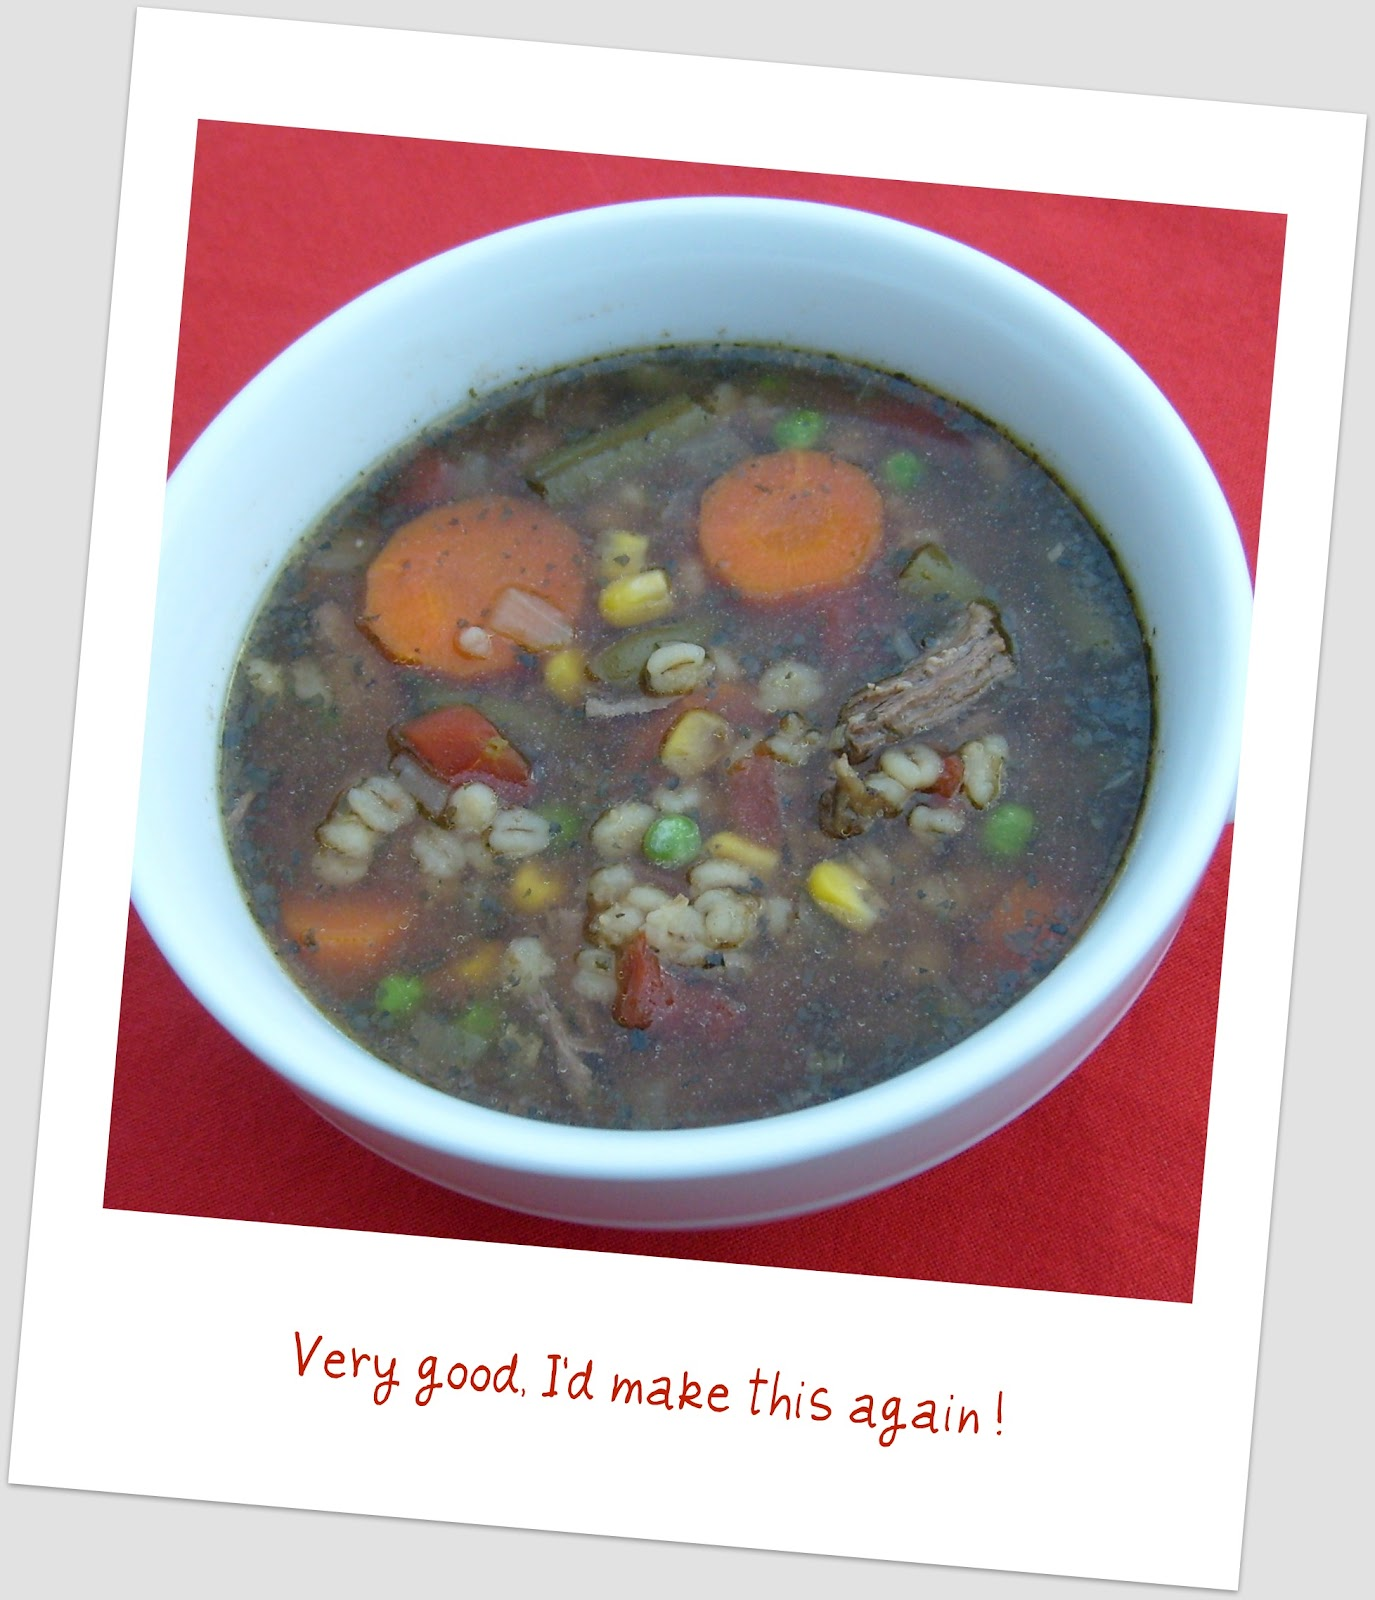 Vegetable-Beef Barley Soup (Crock Pot)